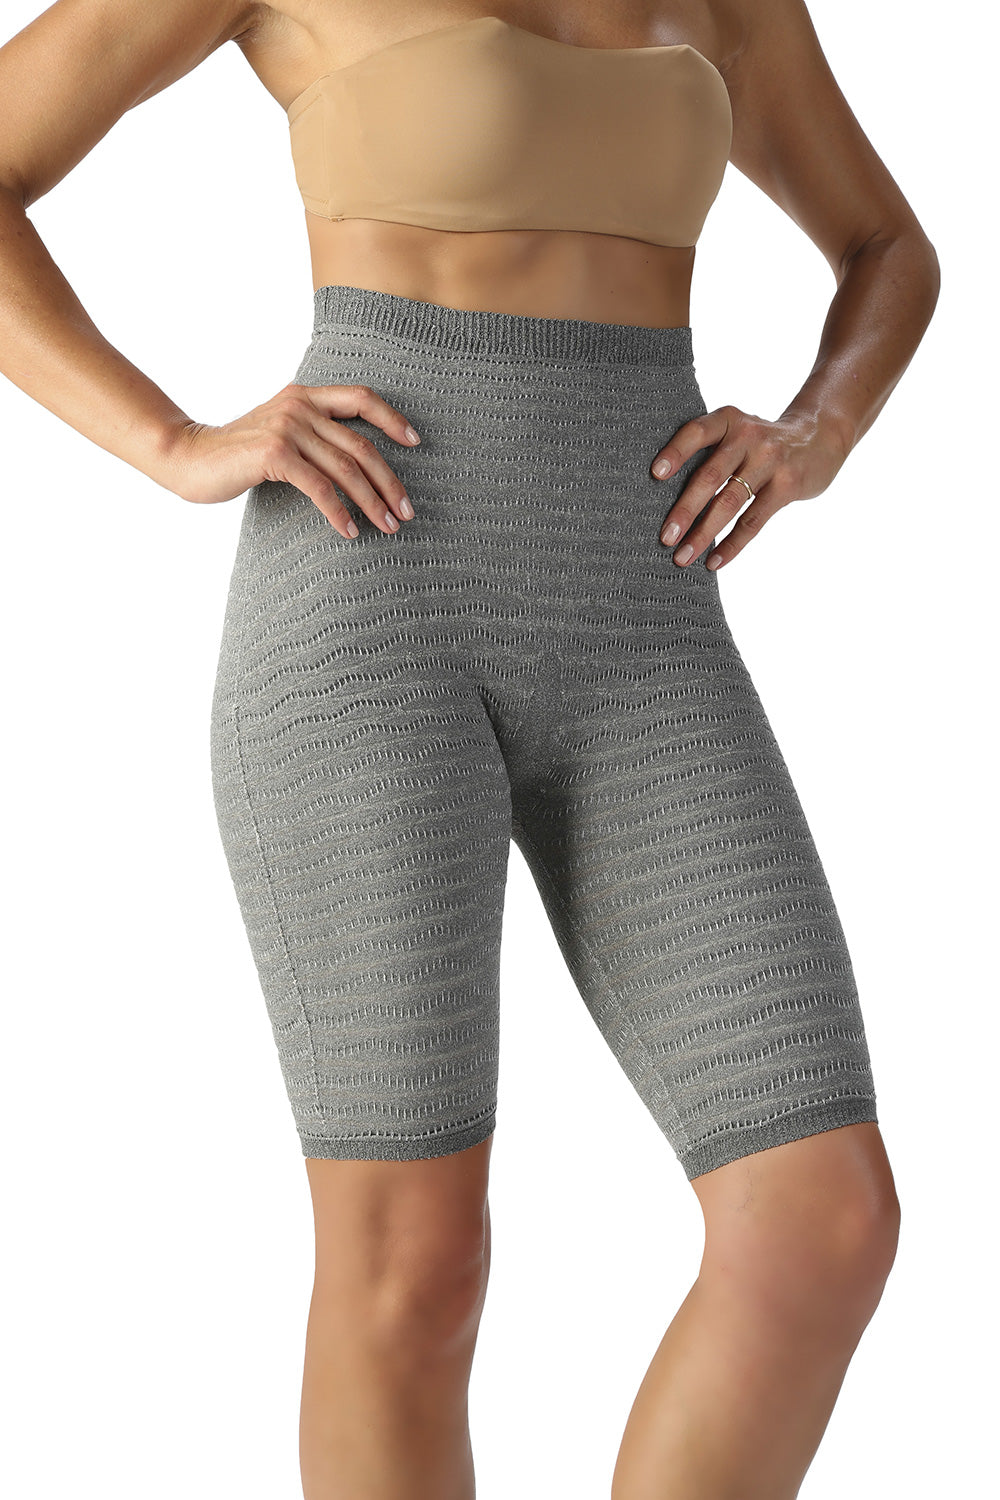 SPIKE-CELL HIGH WAIST CYCLING SHORTS